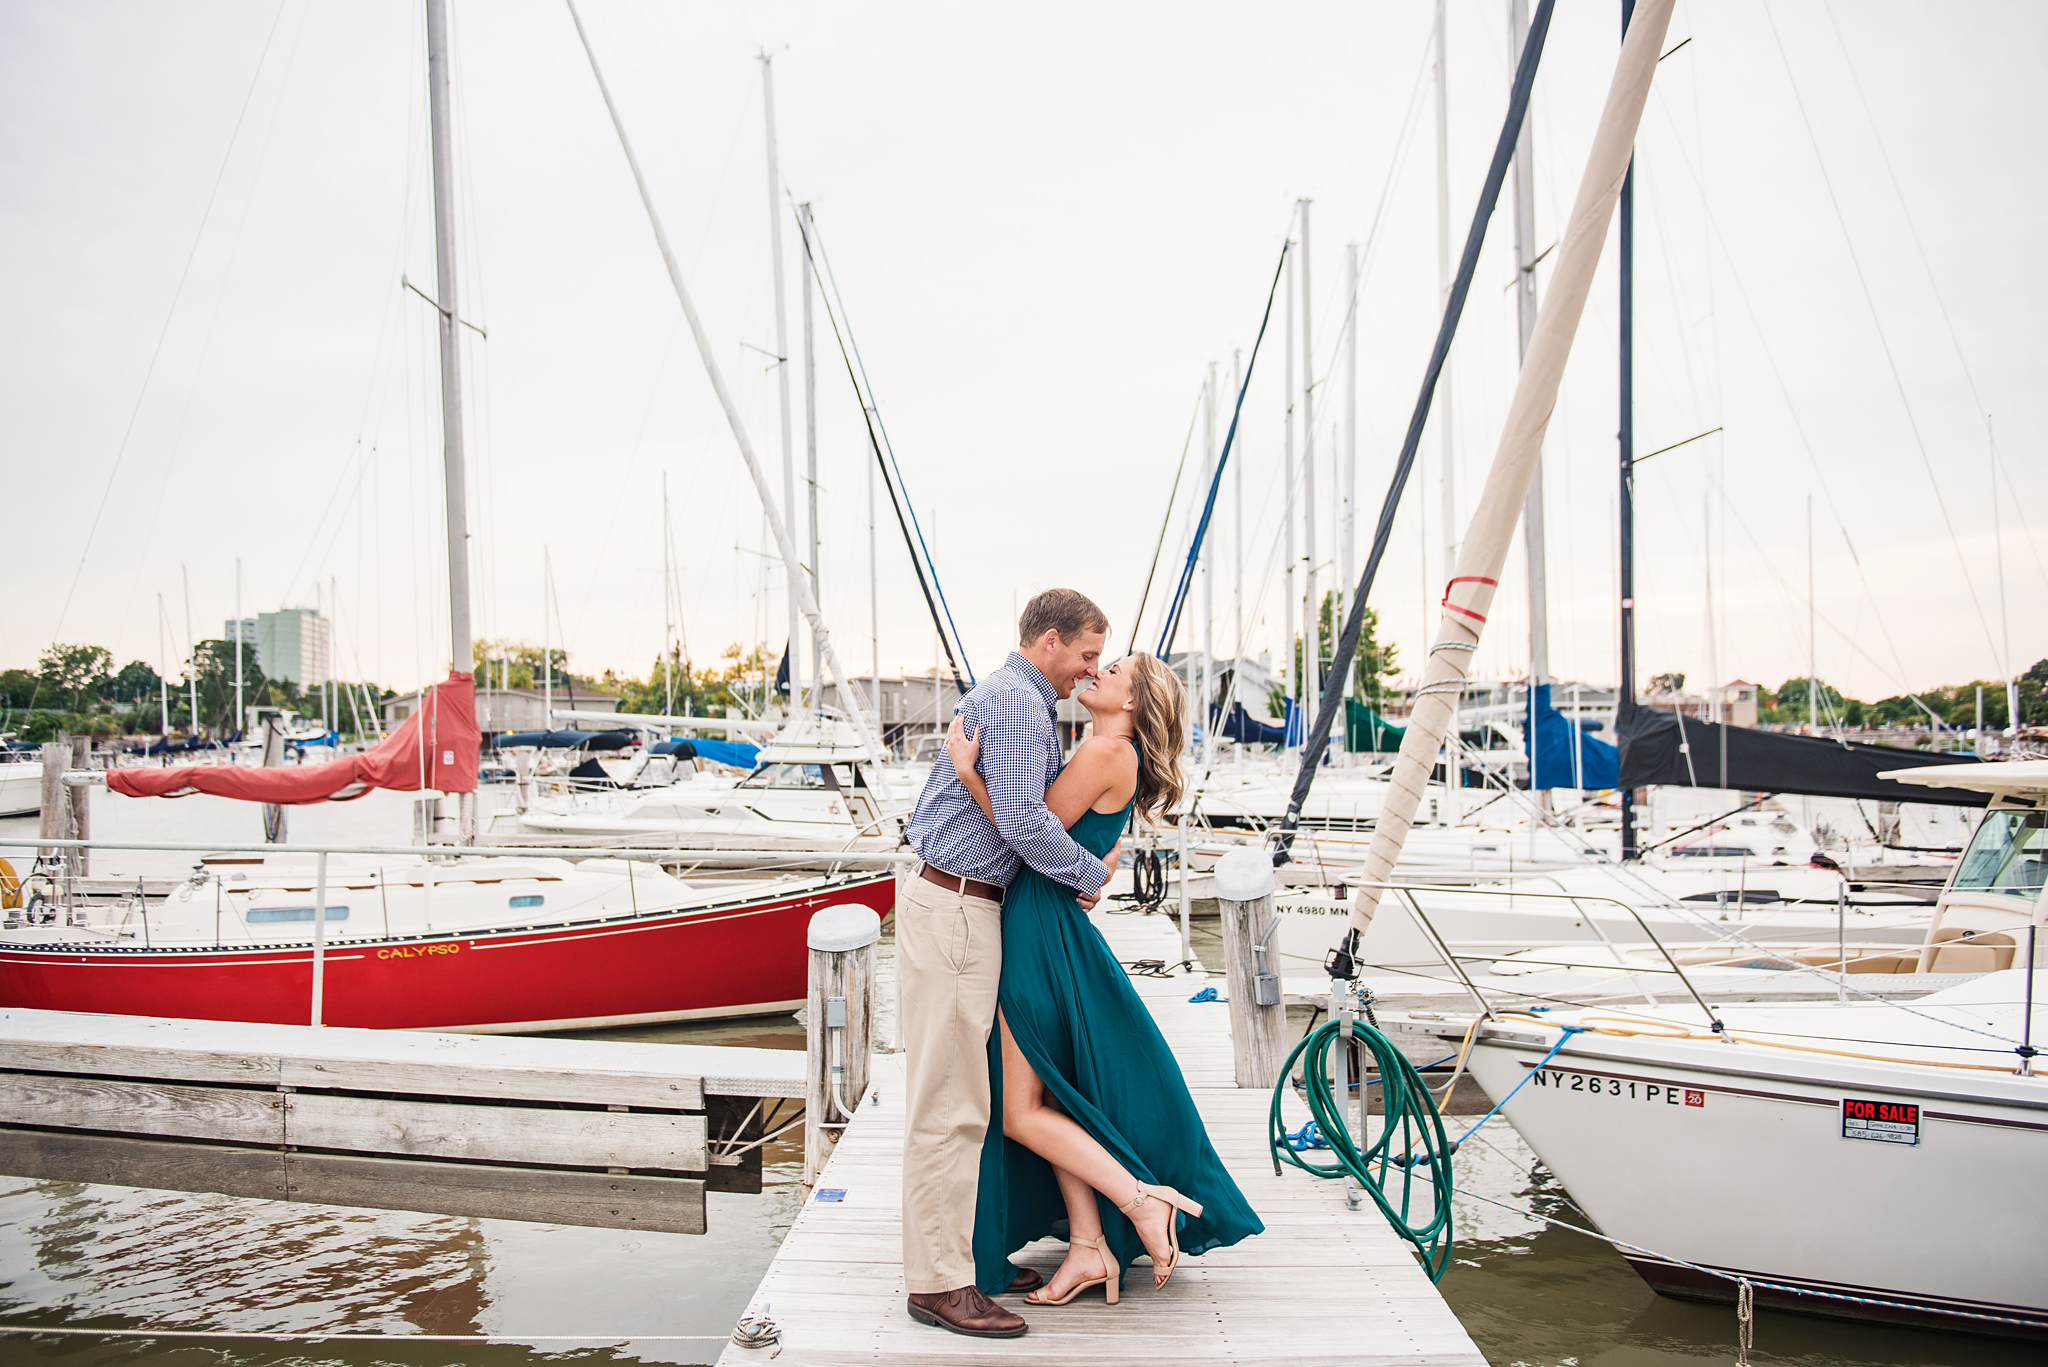 George_Eastman_House_Rochester_Yacht_Club_Rochester_Engagement_Session_JILL_STUDIO_Rochester_NY_Photographer_DSC_8174.jpg